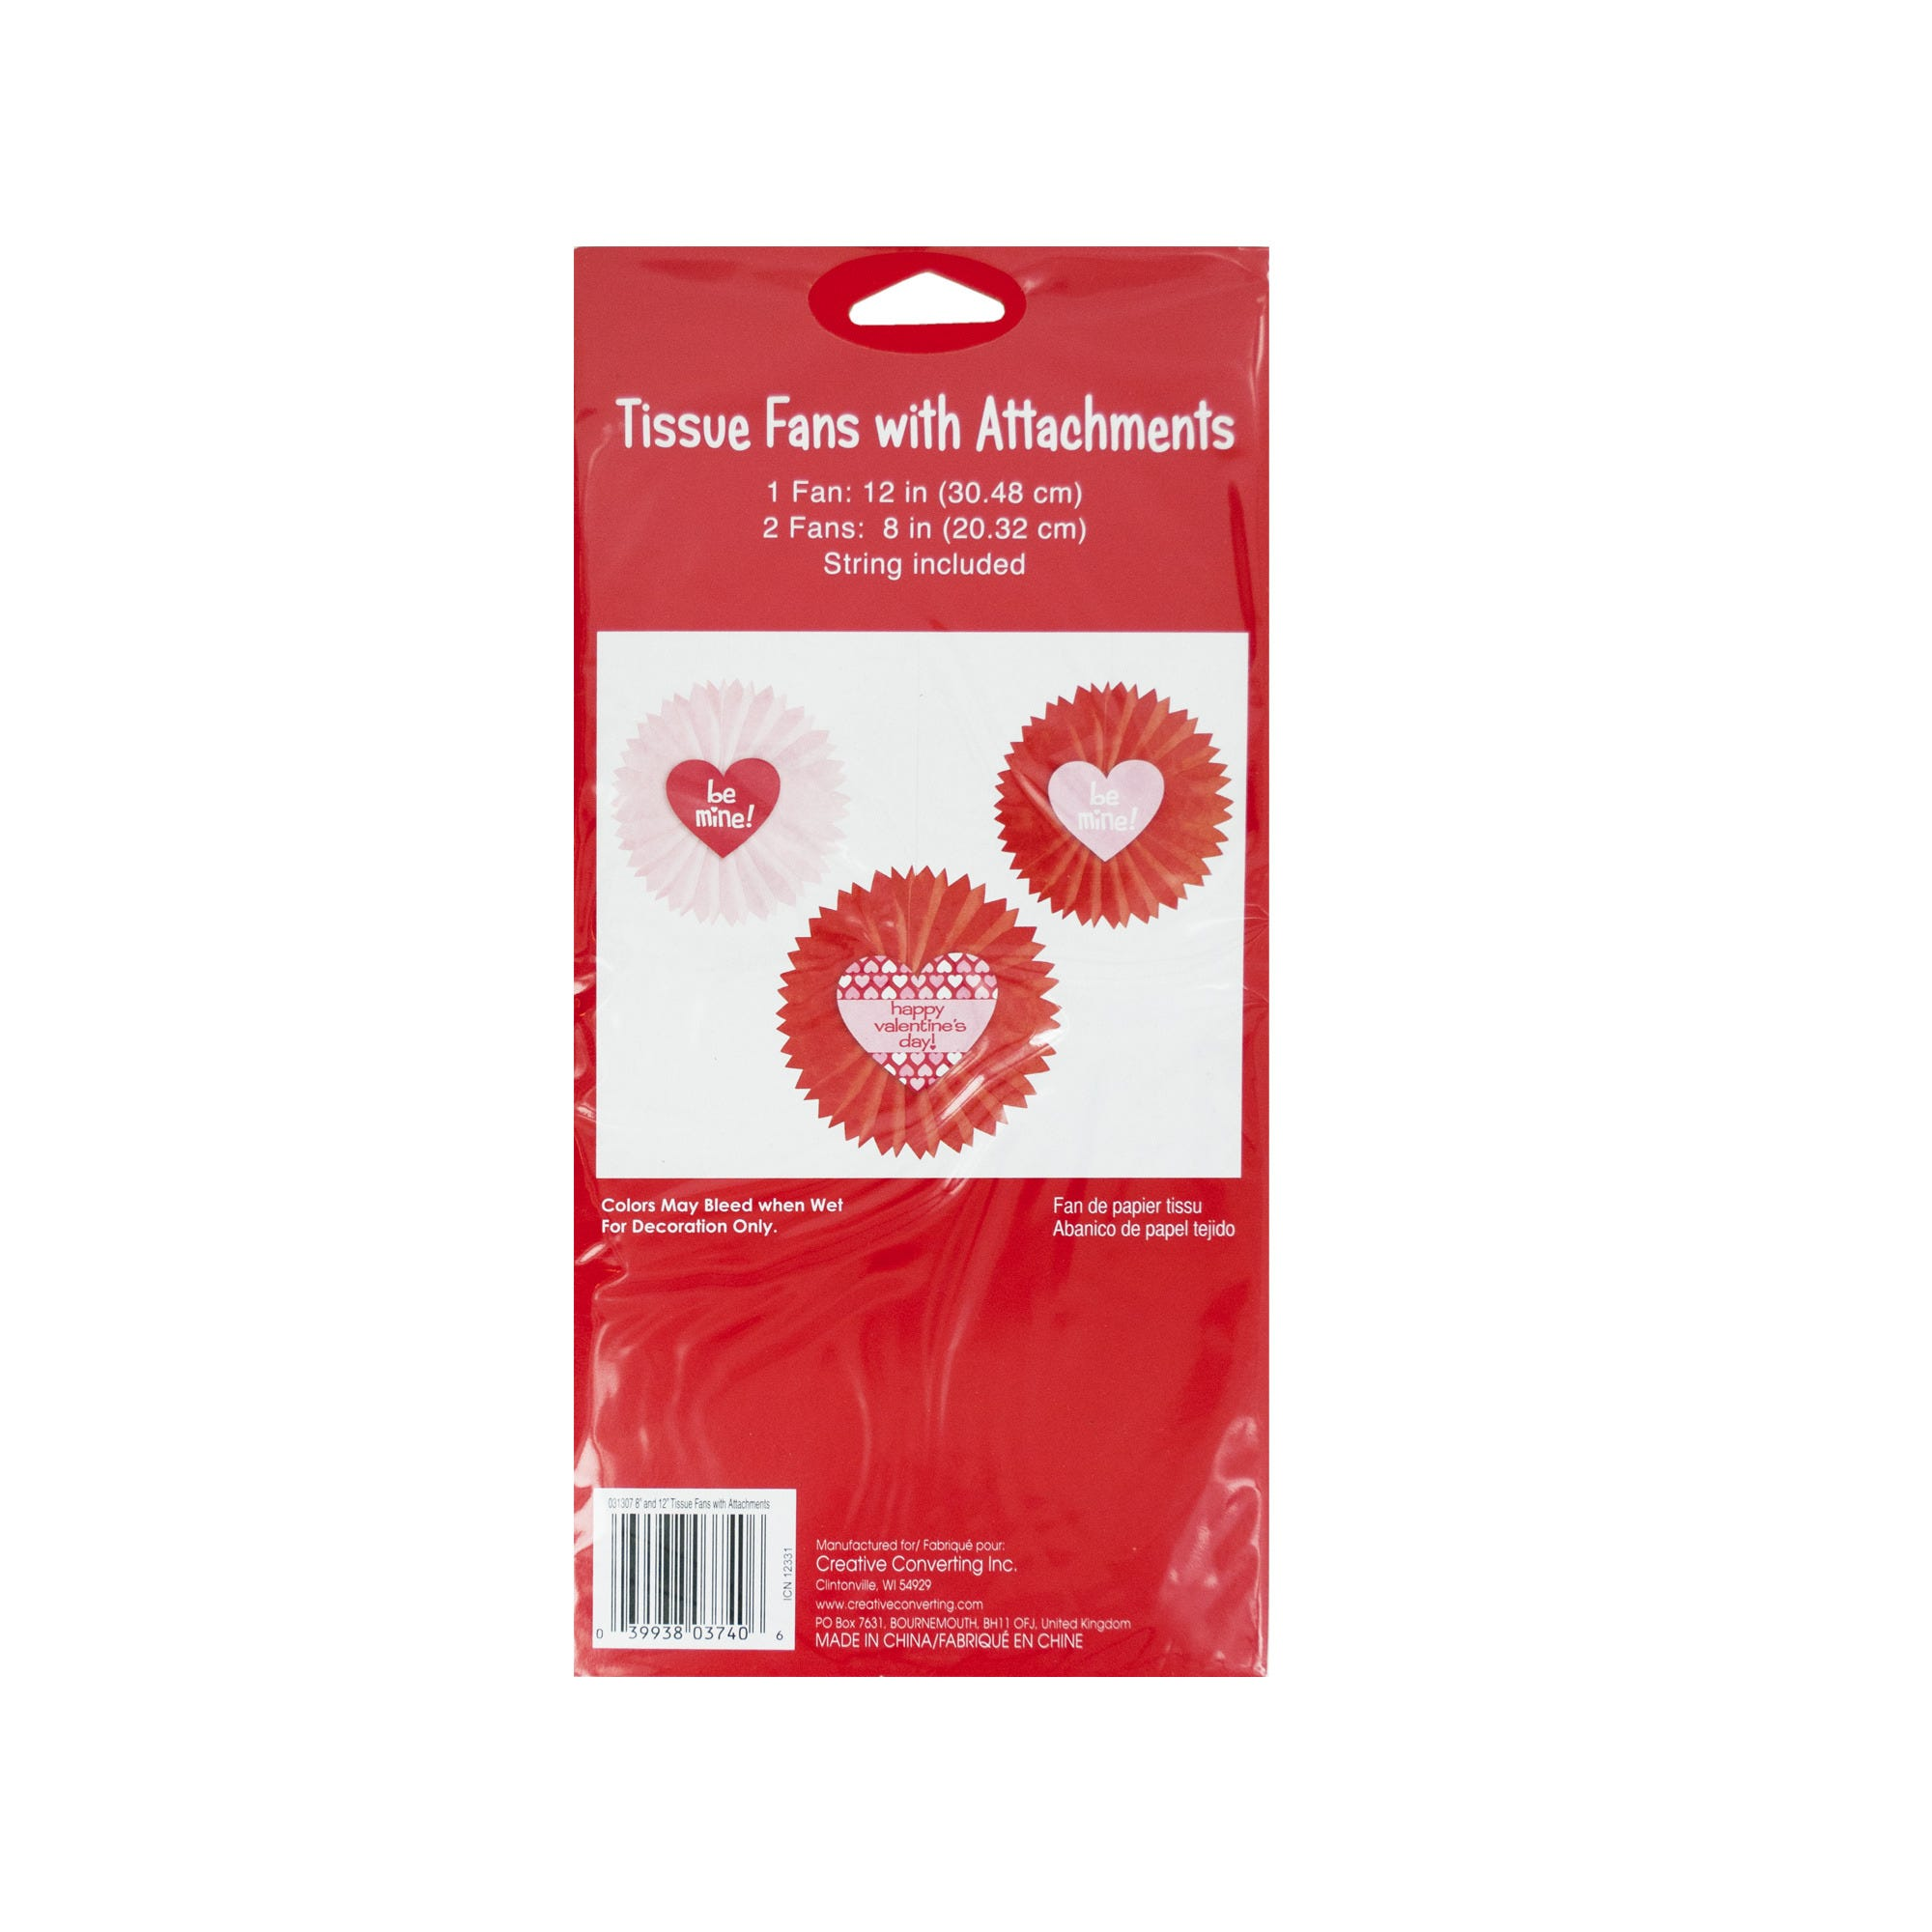 VALENTINE's Day Tissue Fan Hanging Decorations- Qty 24